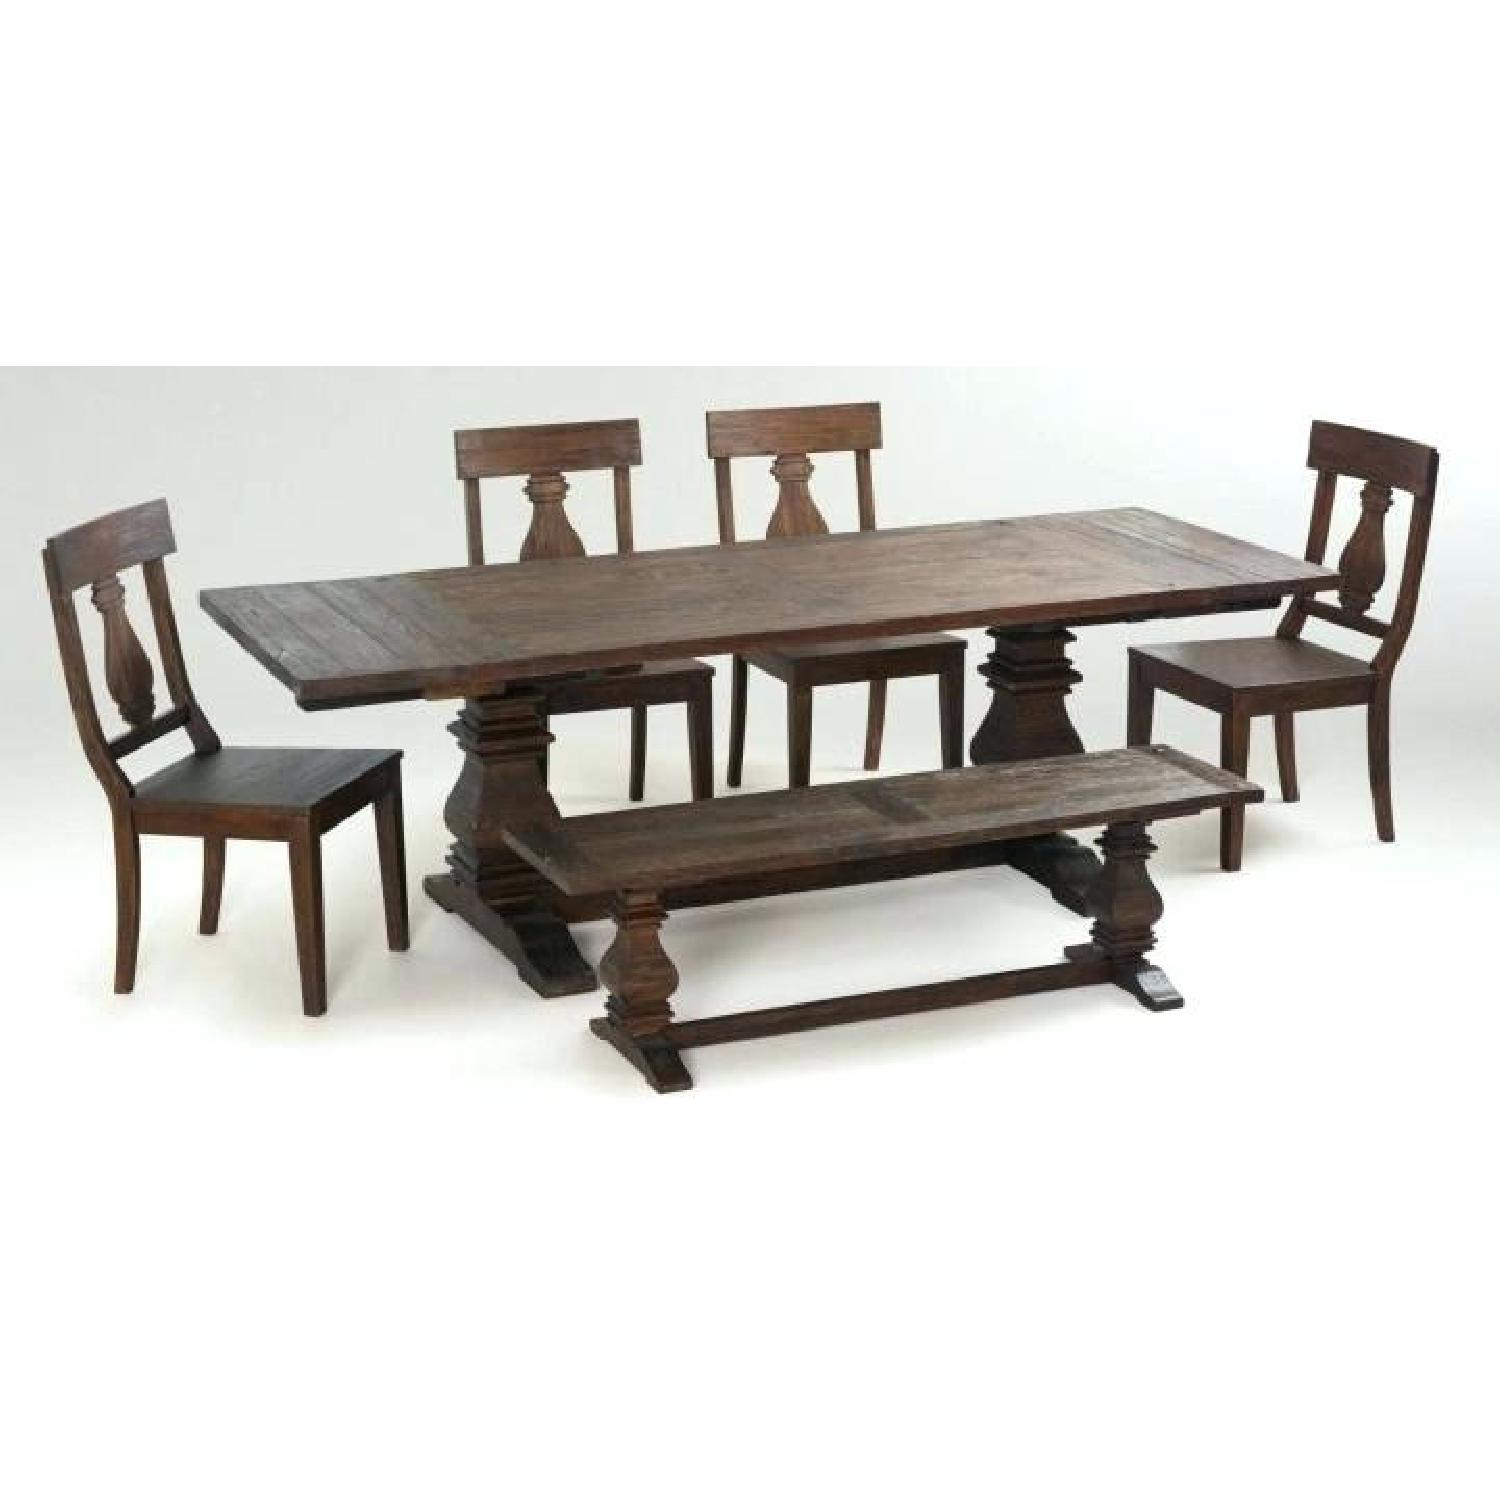 Tristan Wood Dining Table w/ 1 Bench & 4 Chairs - image-5